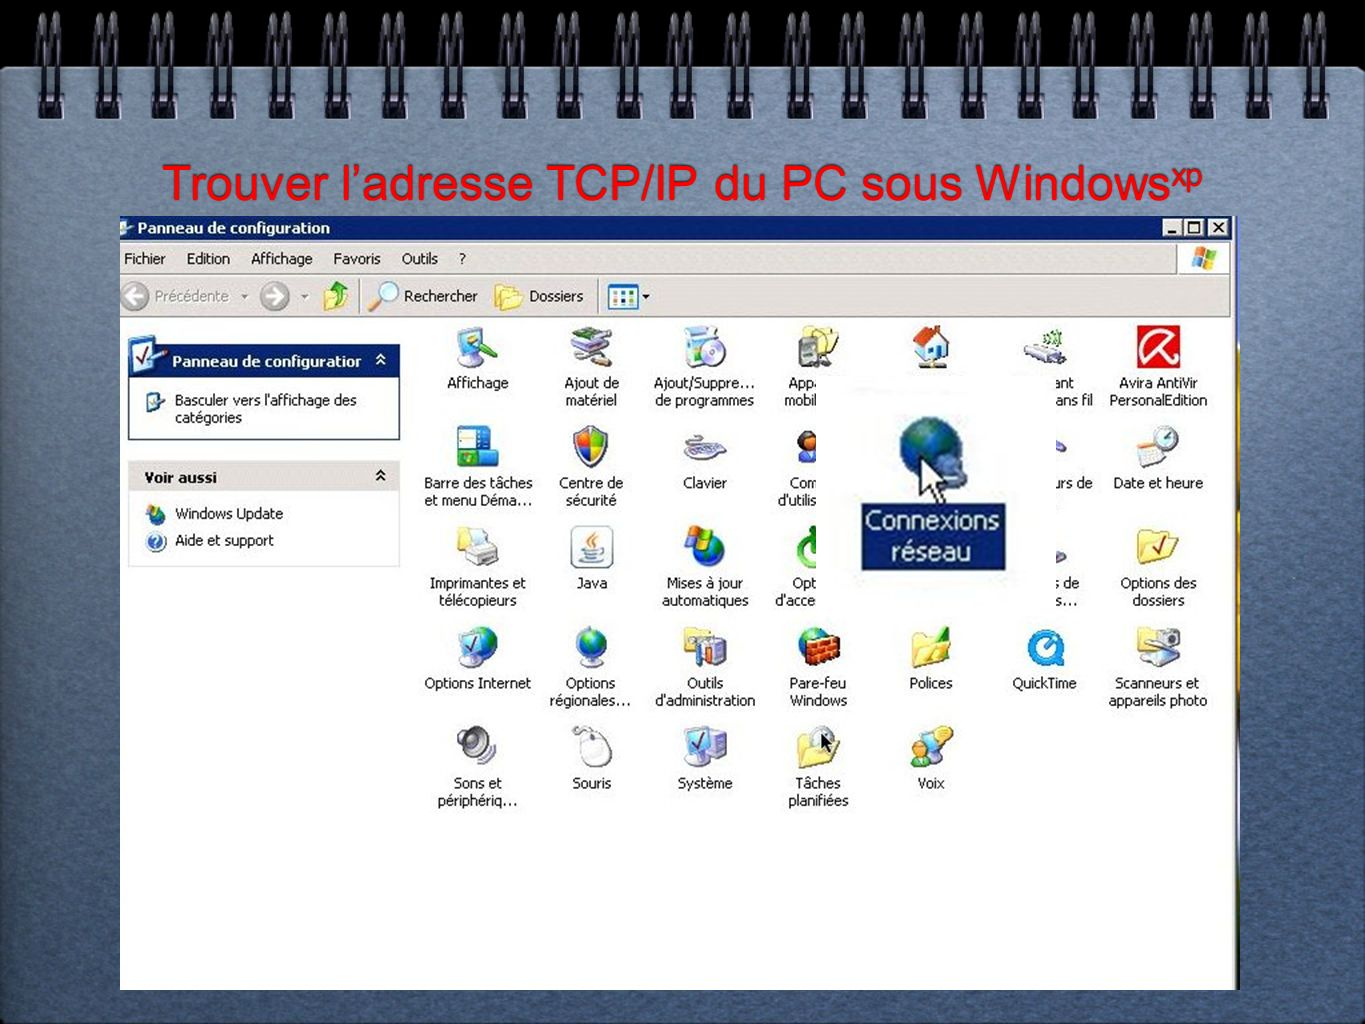 Trouver ladresse TCP/IP du PC sous Windows xp